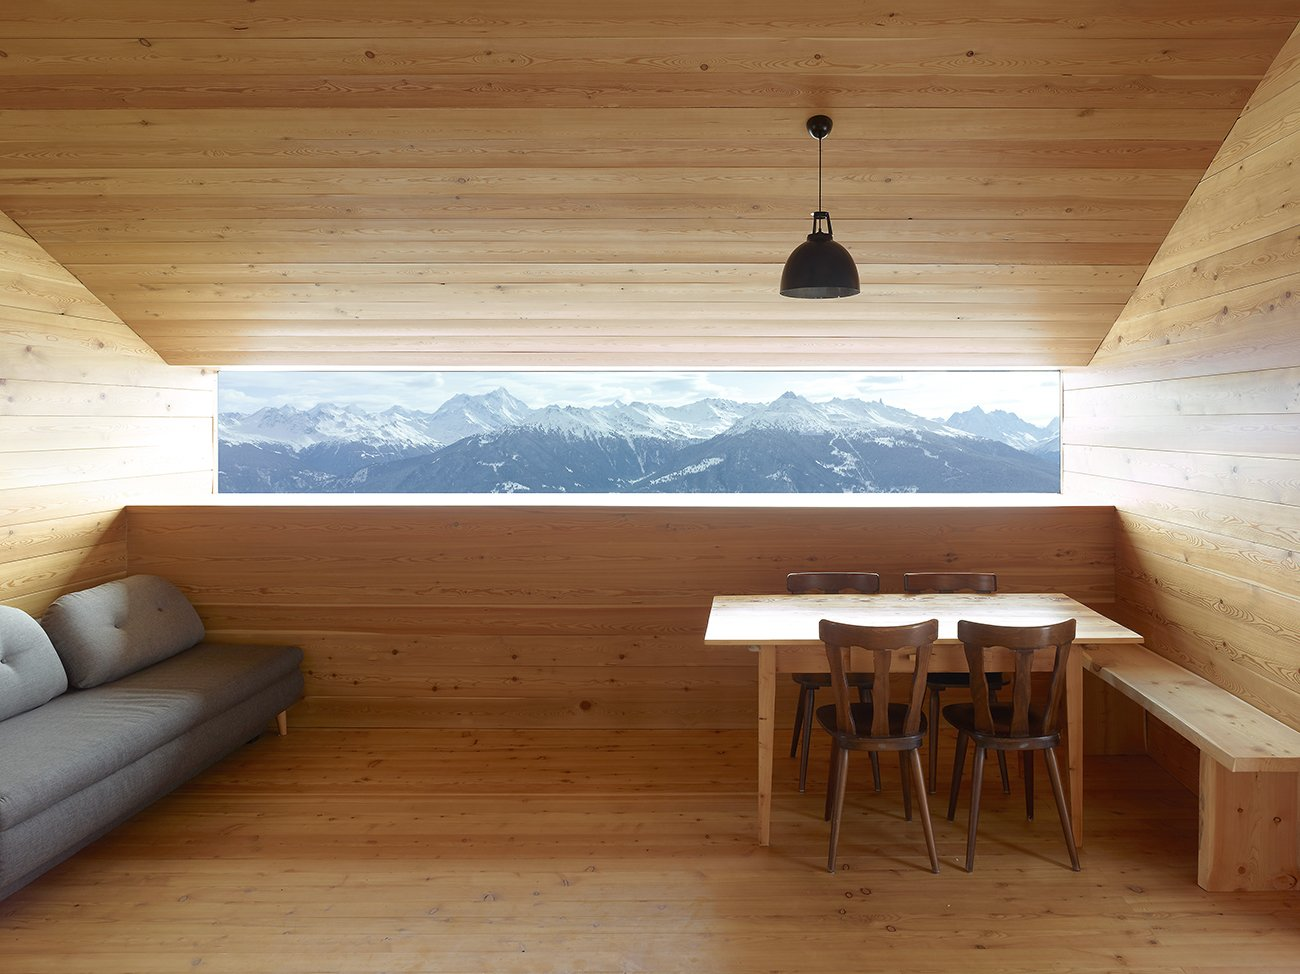 Boisset Home in the Alps of Le Biolley, Switzerland; Architects: Savioz Fabrizzi Architects; Photo by Thomas Jantscher  Woodgrain by Jenny Xie from Cabin Fever